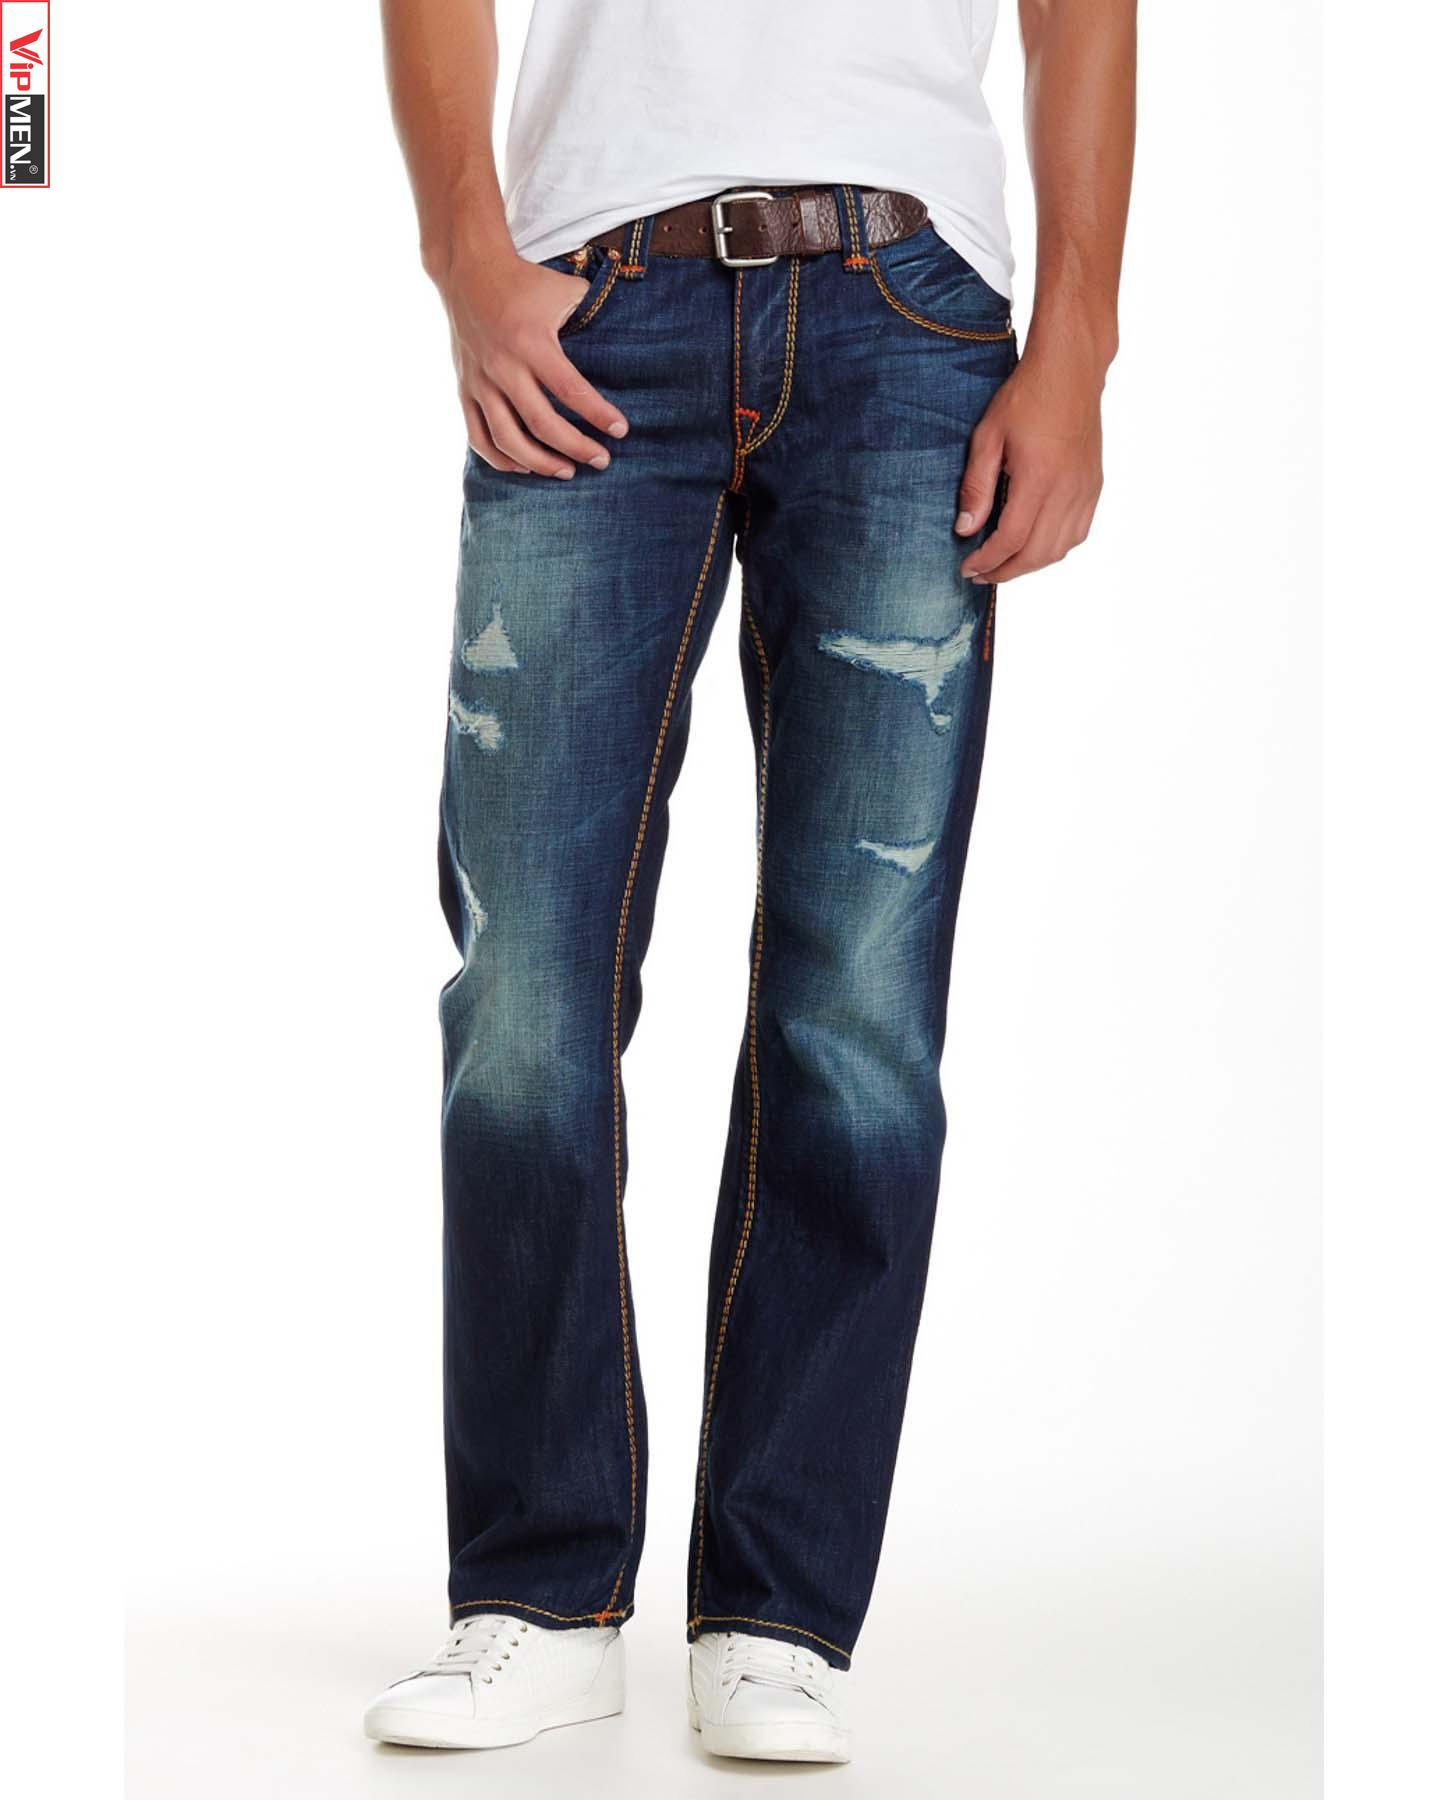 Quần True Religion 31-32